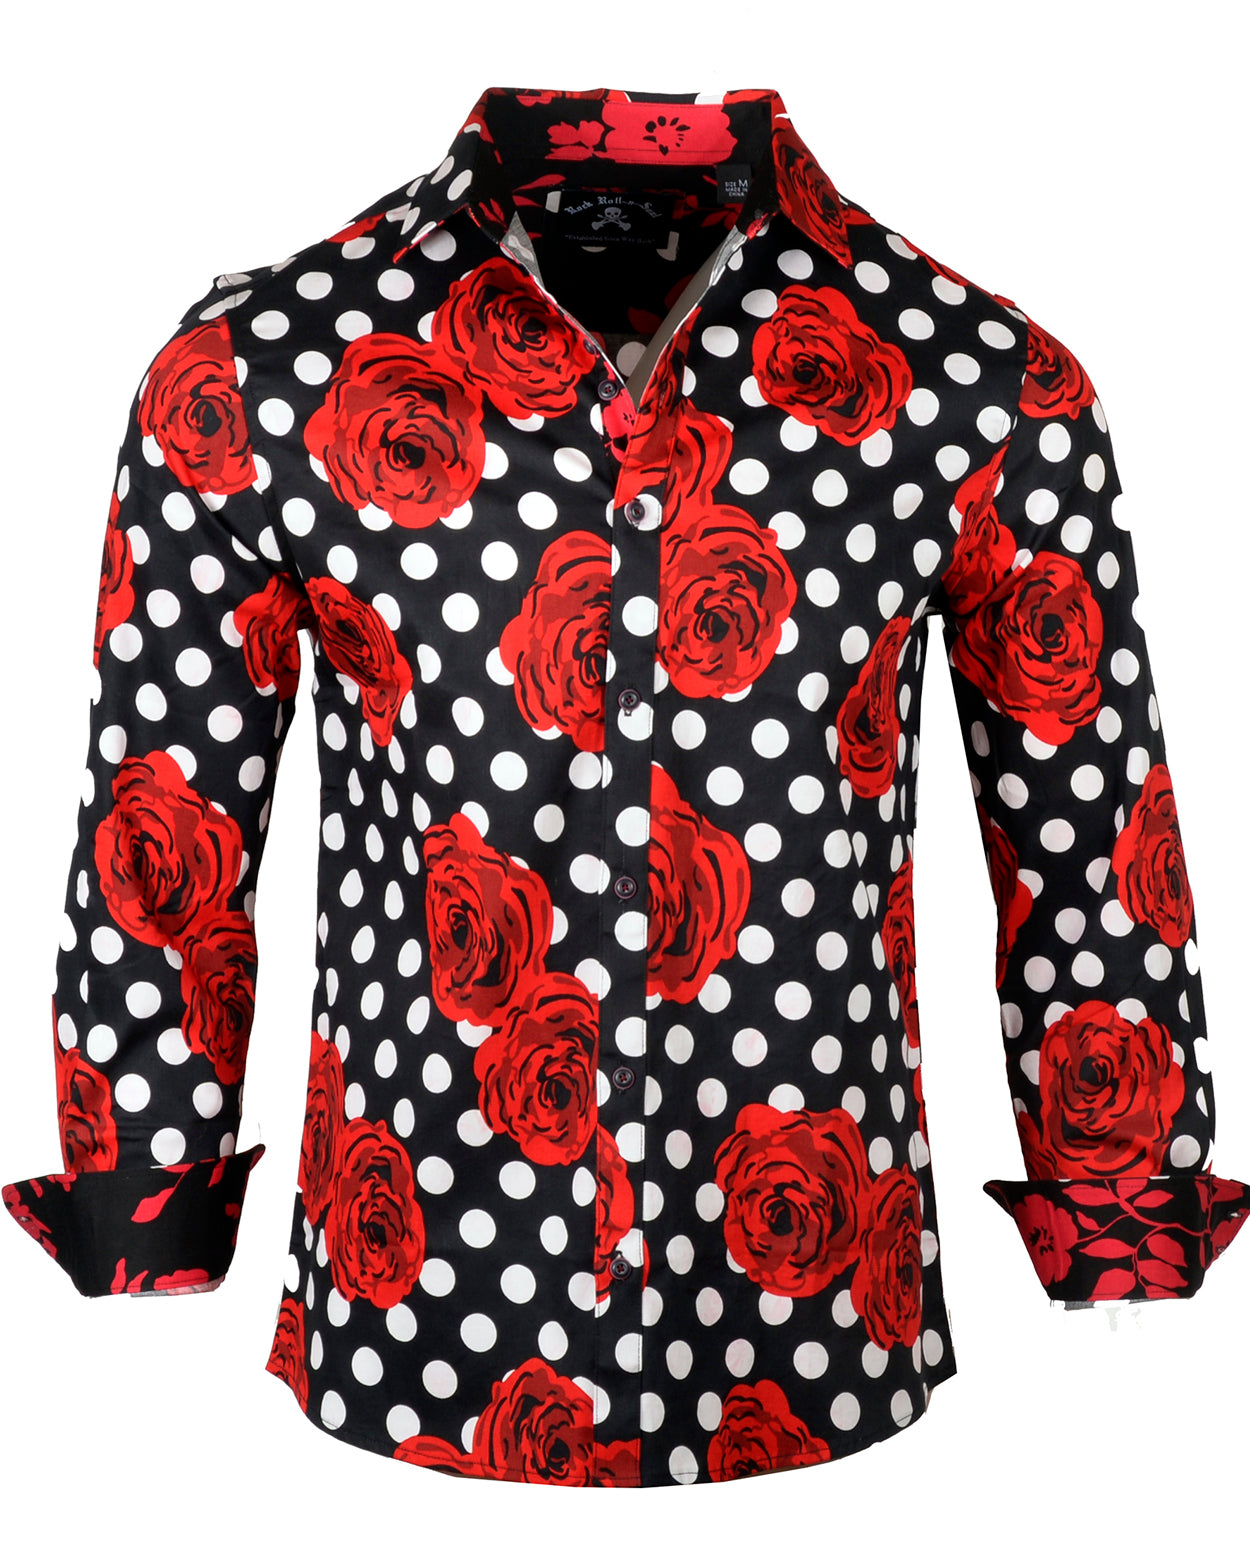 Men's Casual Fashion Button Up Shirt - Blood and Roses by Rock Roll n Soul